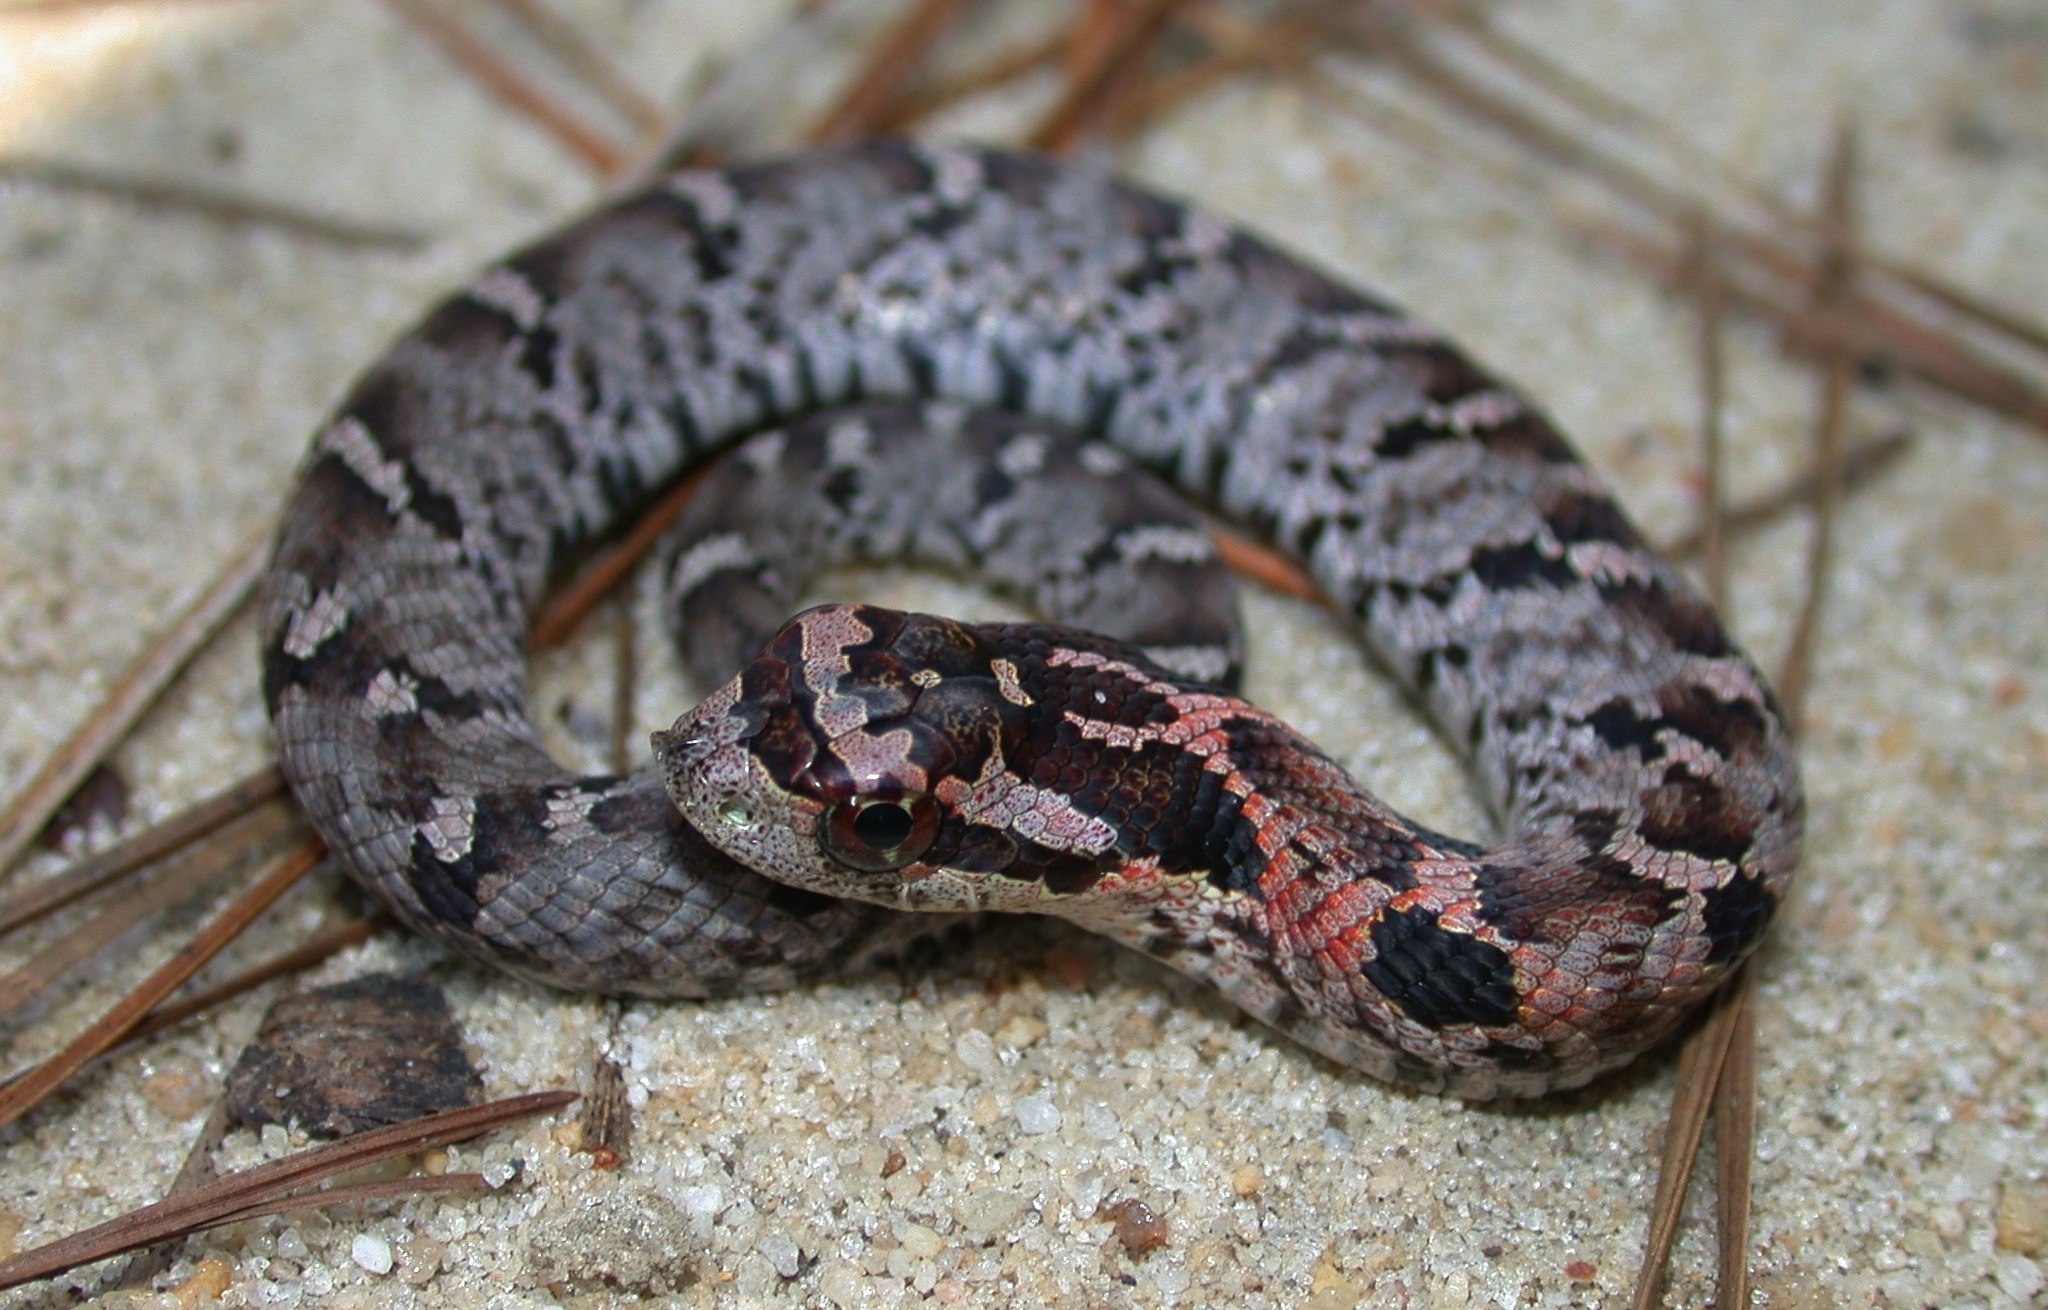 Juvenile eastern hognose Photo by JD Willson